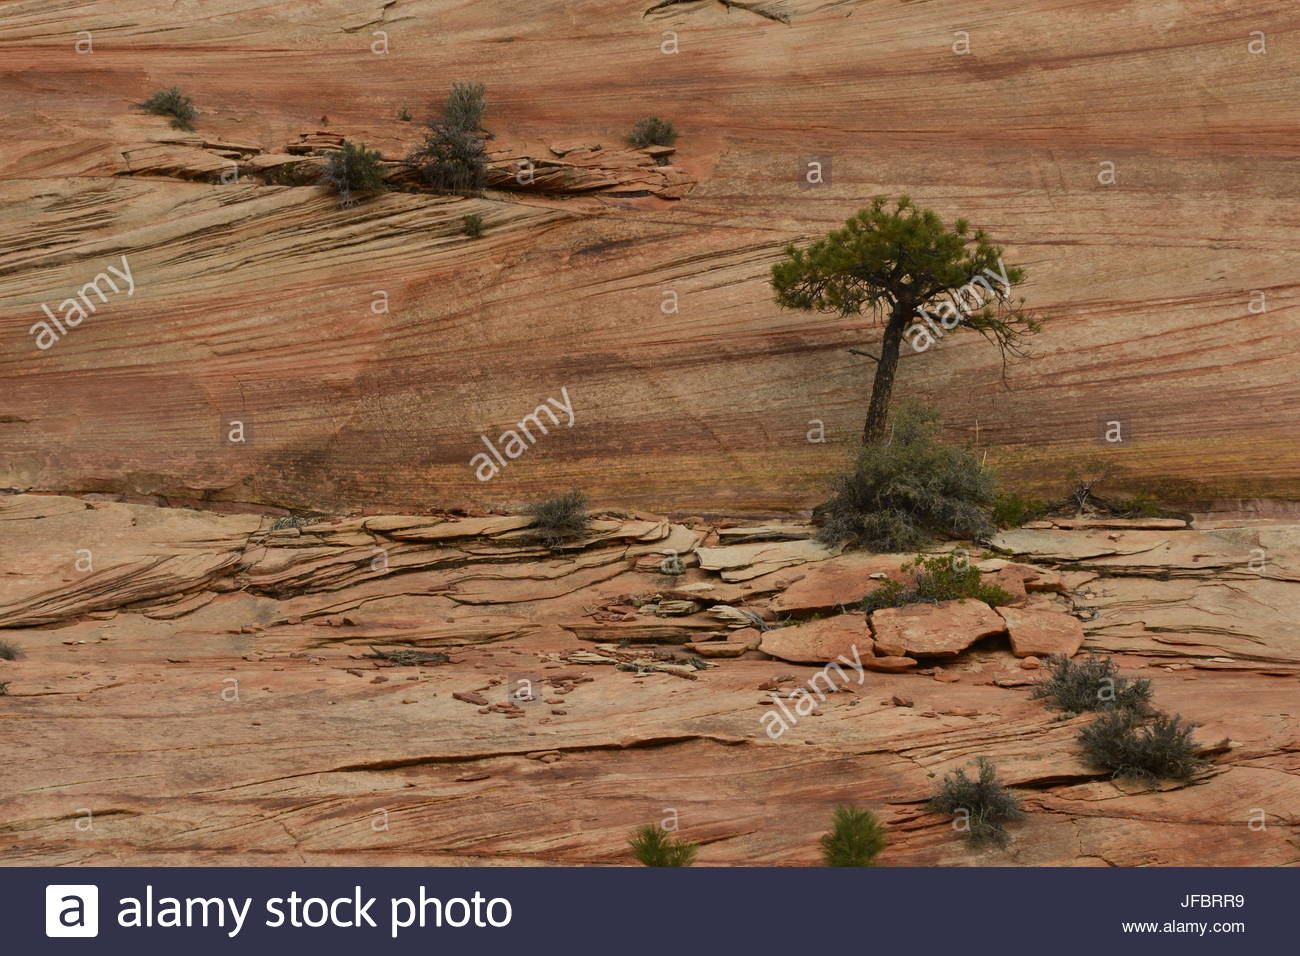 Trees and shrubs dot the landscape of Zion National Park. - Stock Image